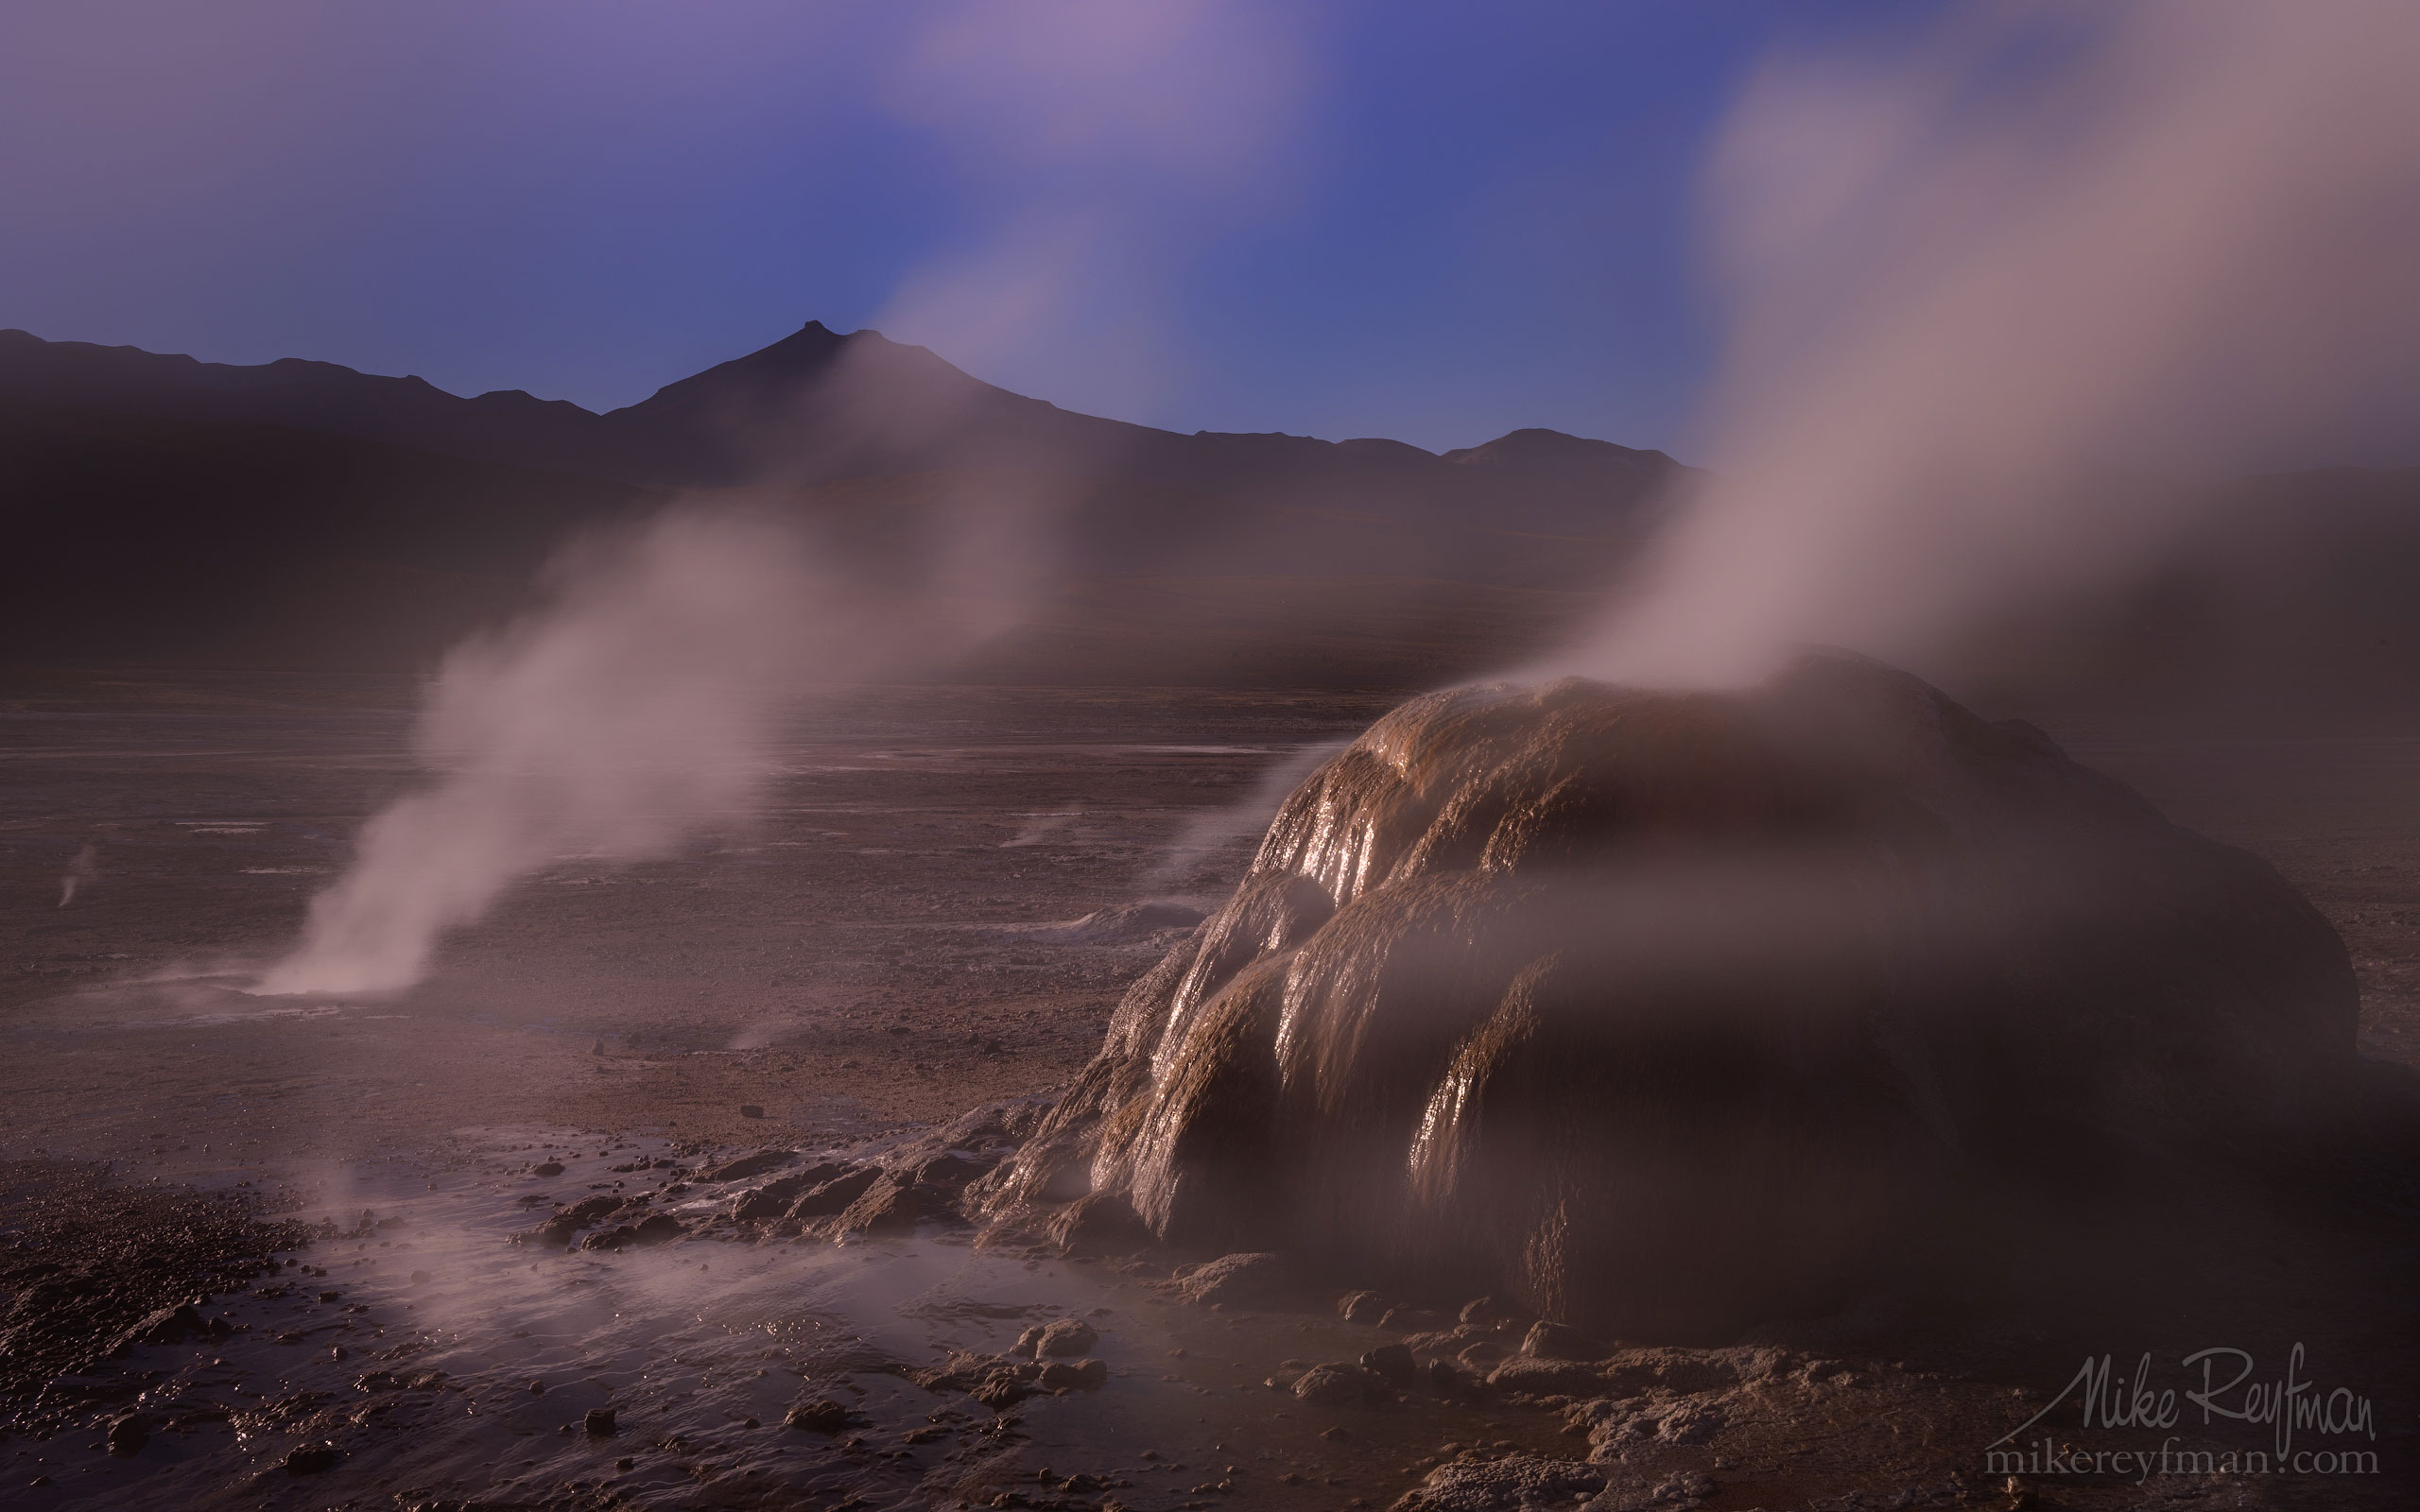 Geyser del Tatio. Atacama's Geothermal Field, Antofagasta Region, Chile AA1-Q3X0535 - Atacama and Altiplano. The Driest Desert and The High Plain - Mike Reyfman Photography